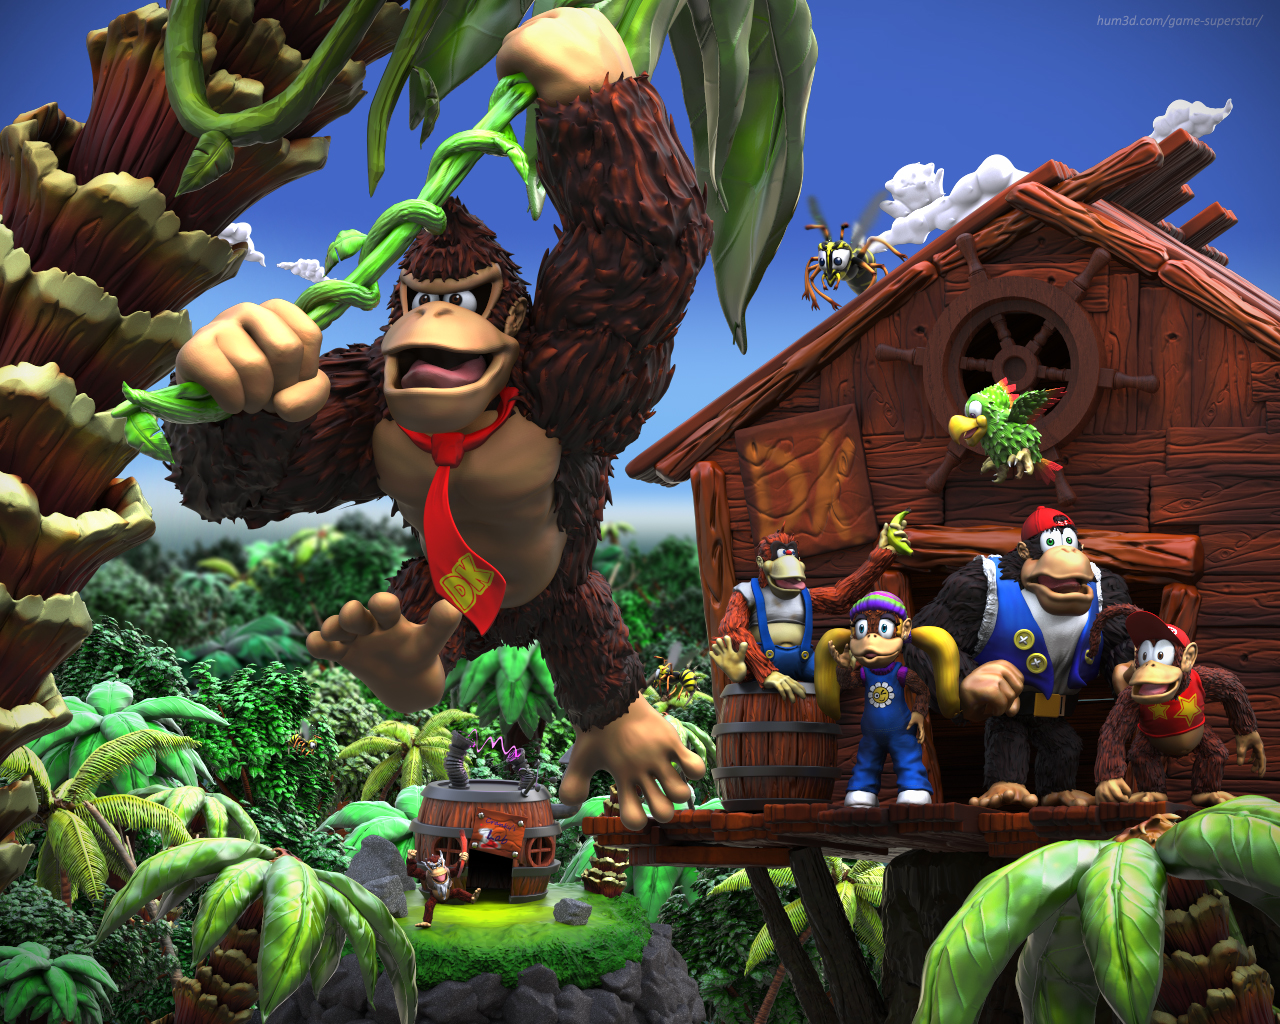 Another day for the DK Crew 3d art